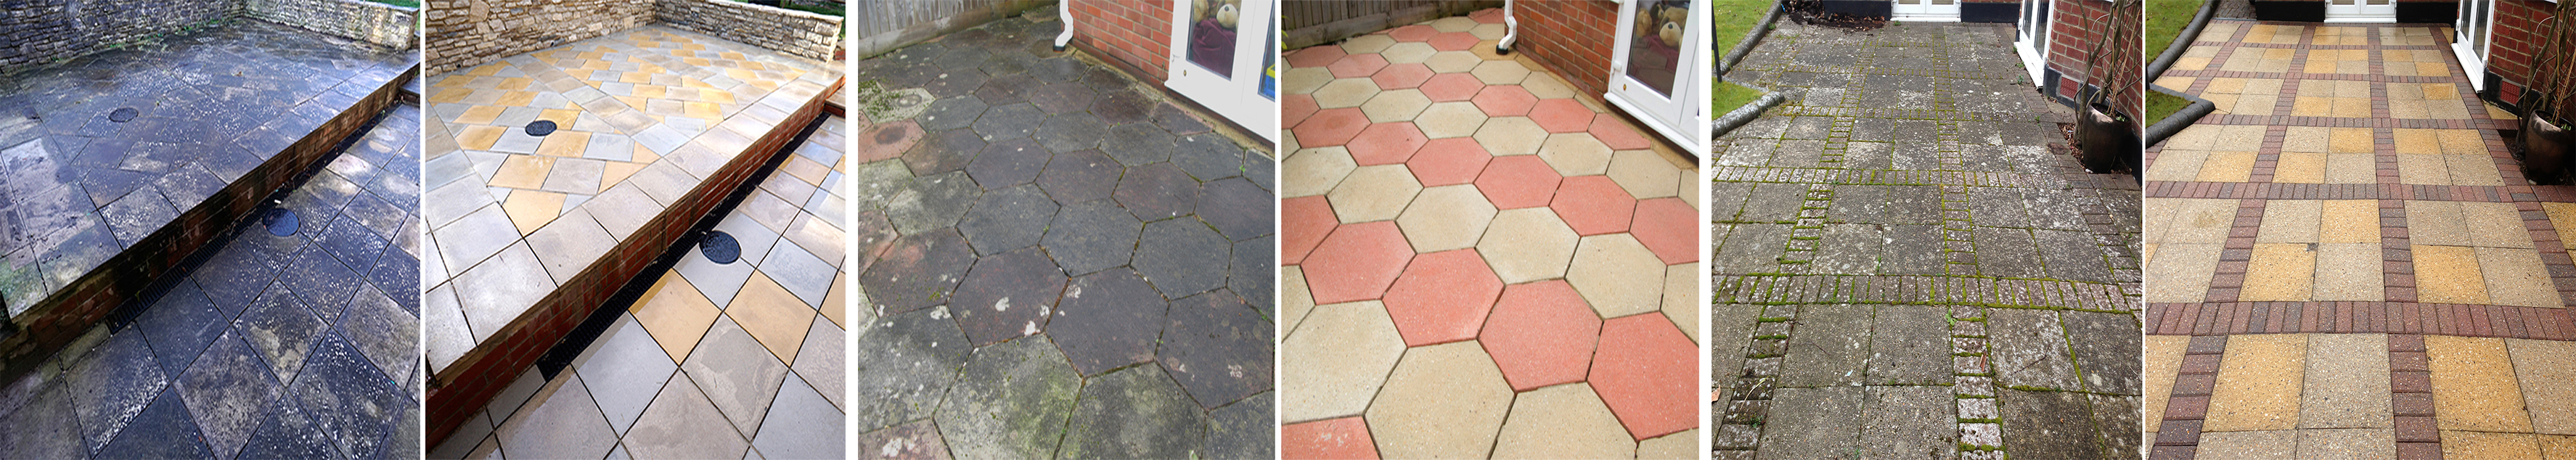 Patio Cleaning Services in Poole, Dorset